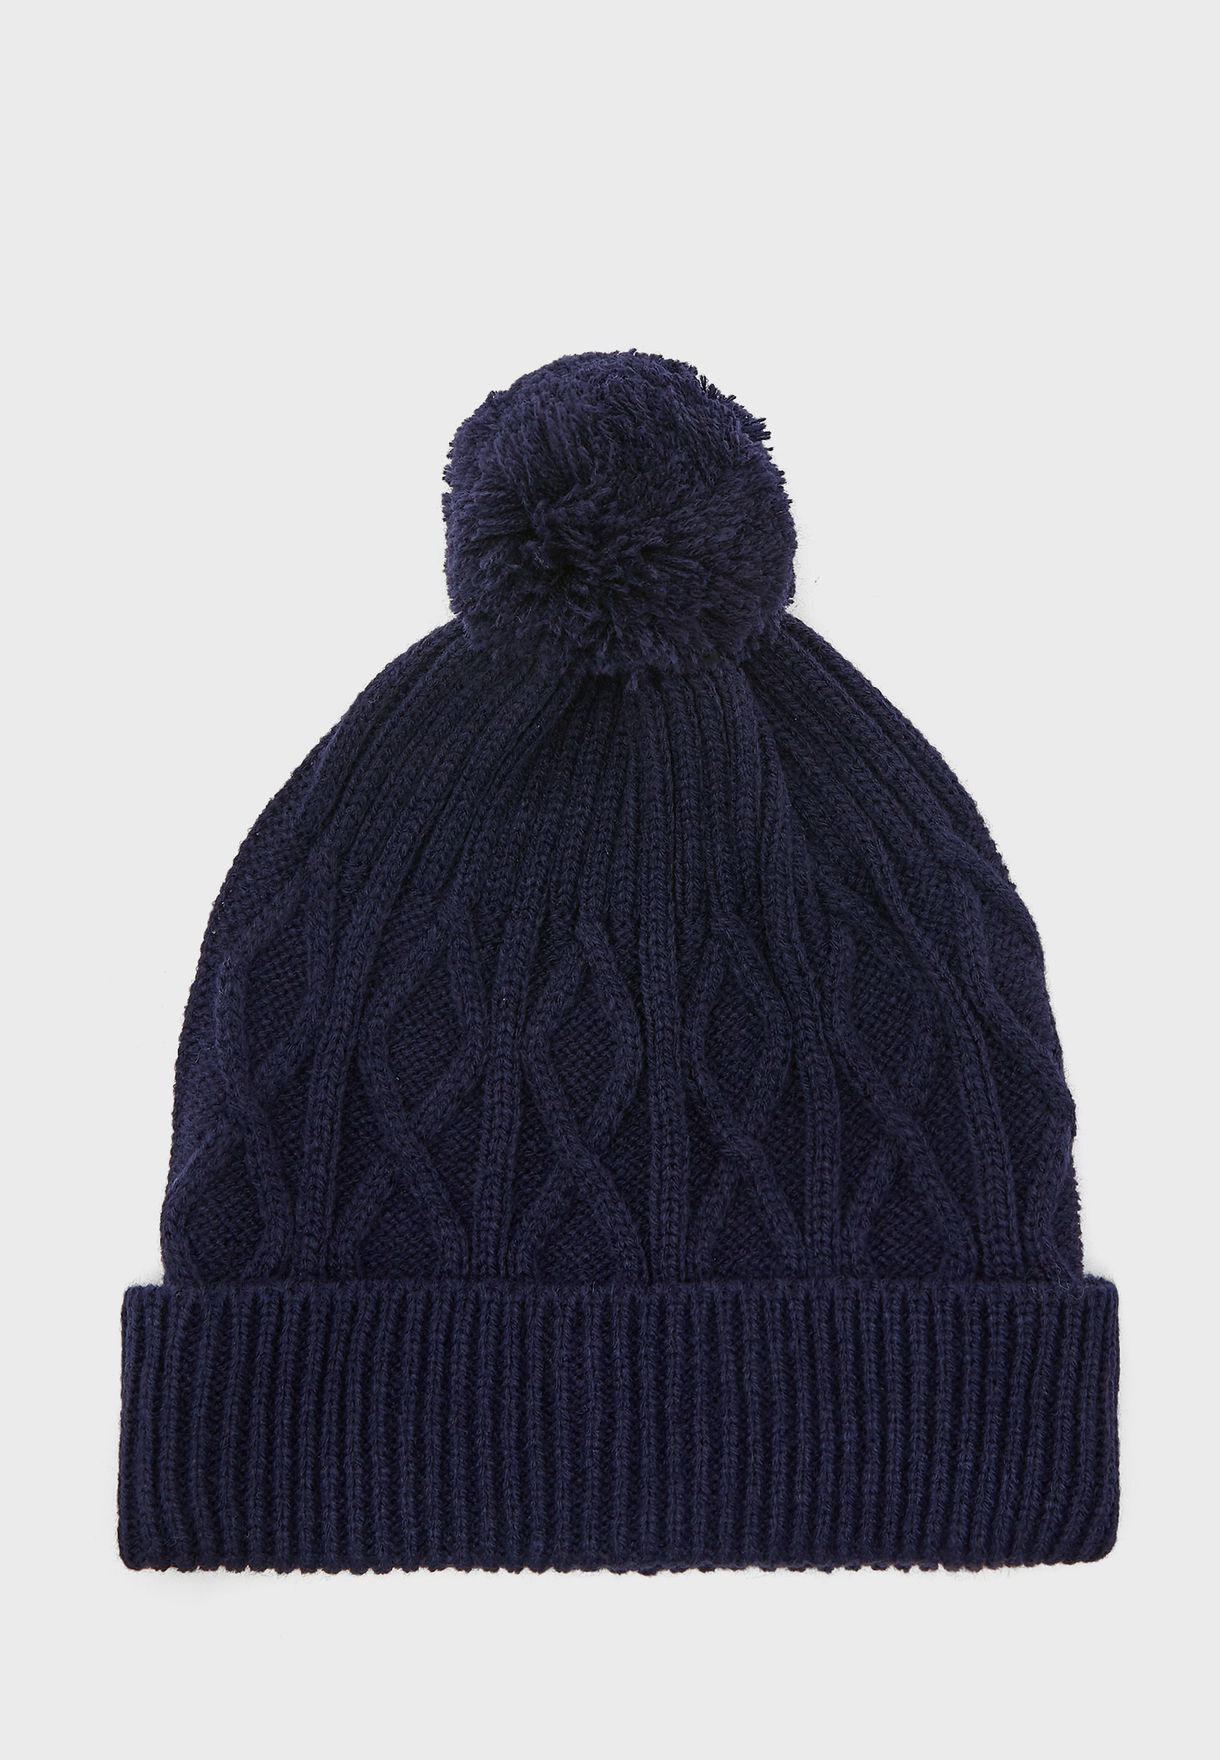 Mens Knitted Cable Hat